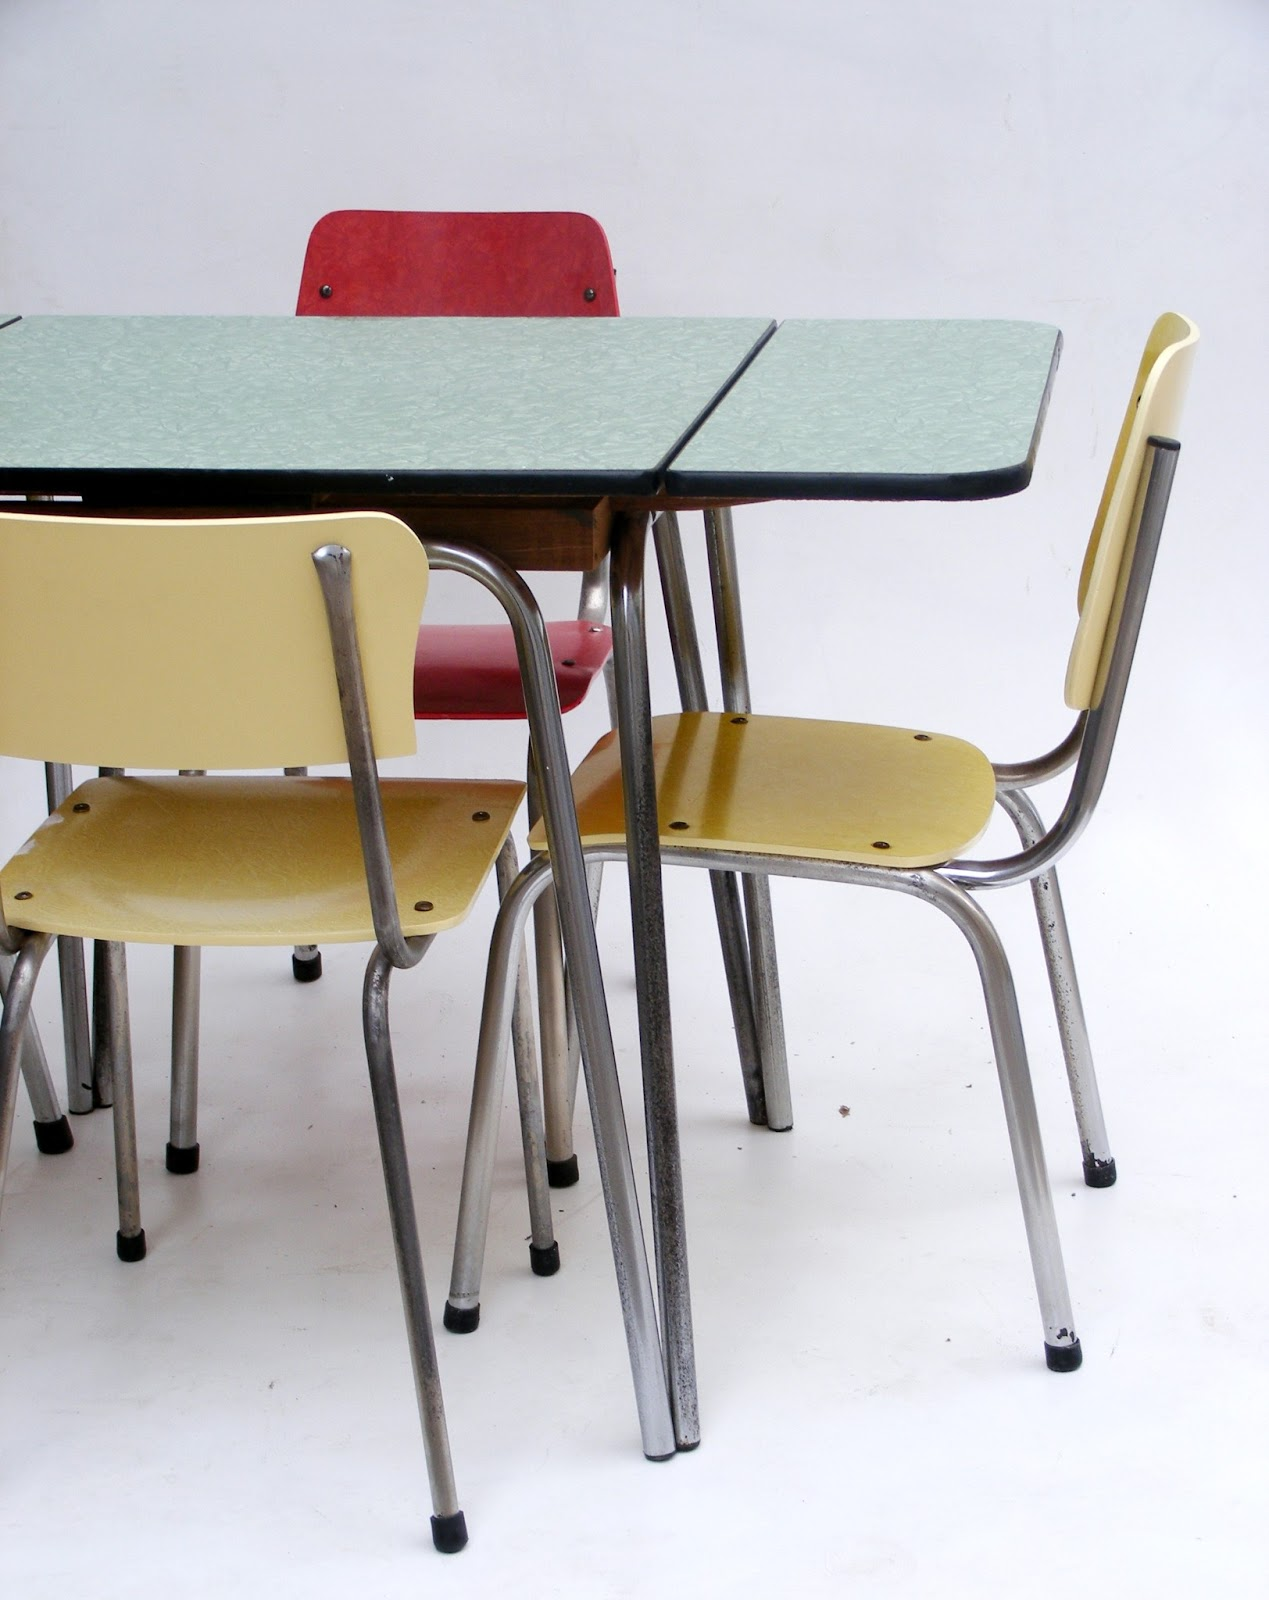 Formica Table And Chairs Vamp Furniture This Weeks New Vintage Furniture Stock At